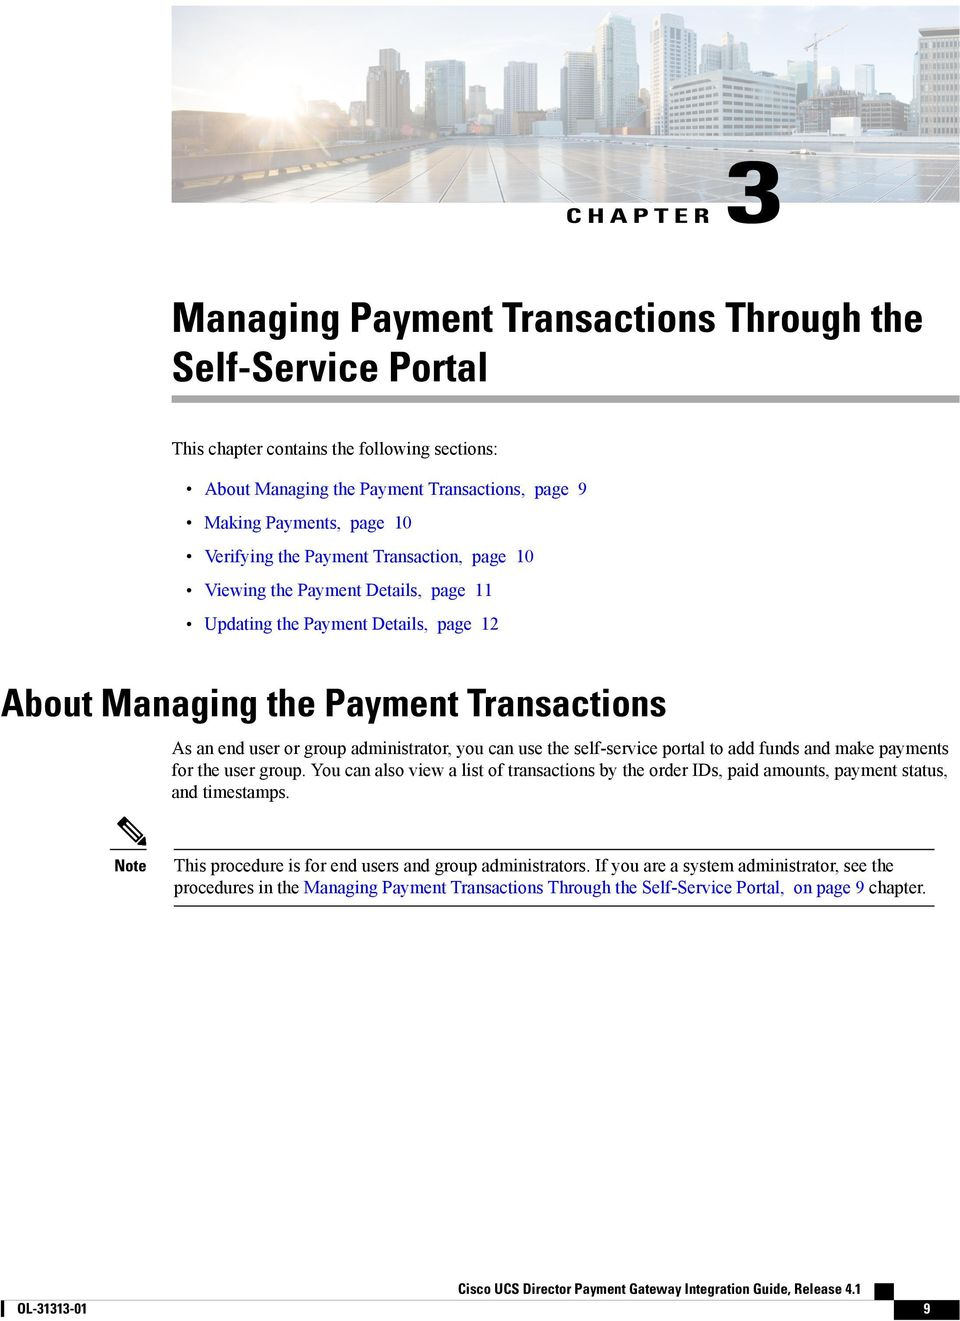 you can use the self-service portal to add funds and make payments for the user group. You can also view a list of transactions by the order IDs, paid amounts, payment status, and timestamps.